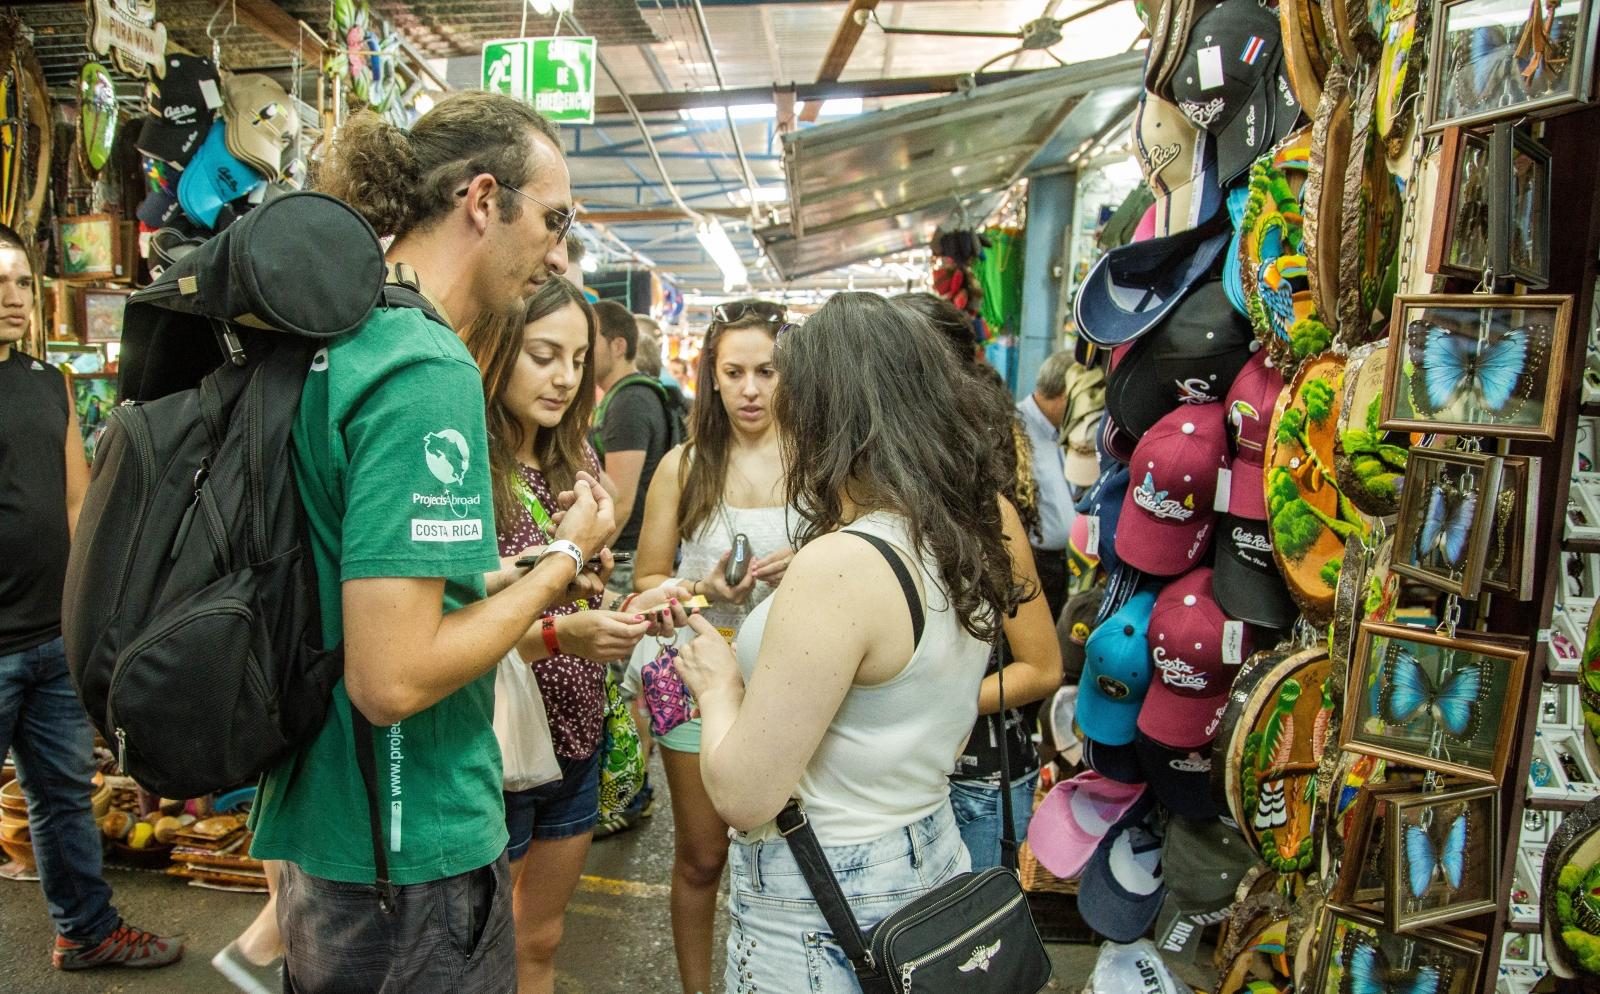 A Projects Abroad volunteer gets shown around a local market after his arrival in Costa Rica